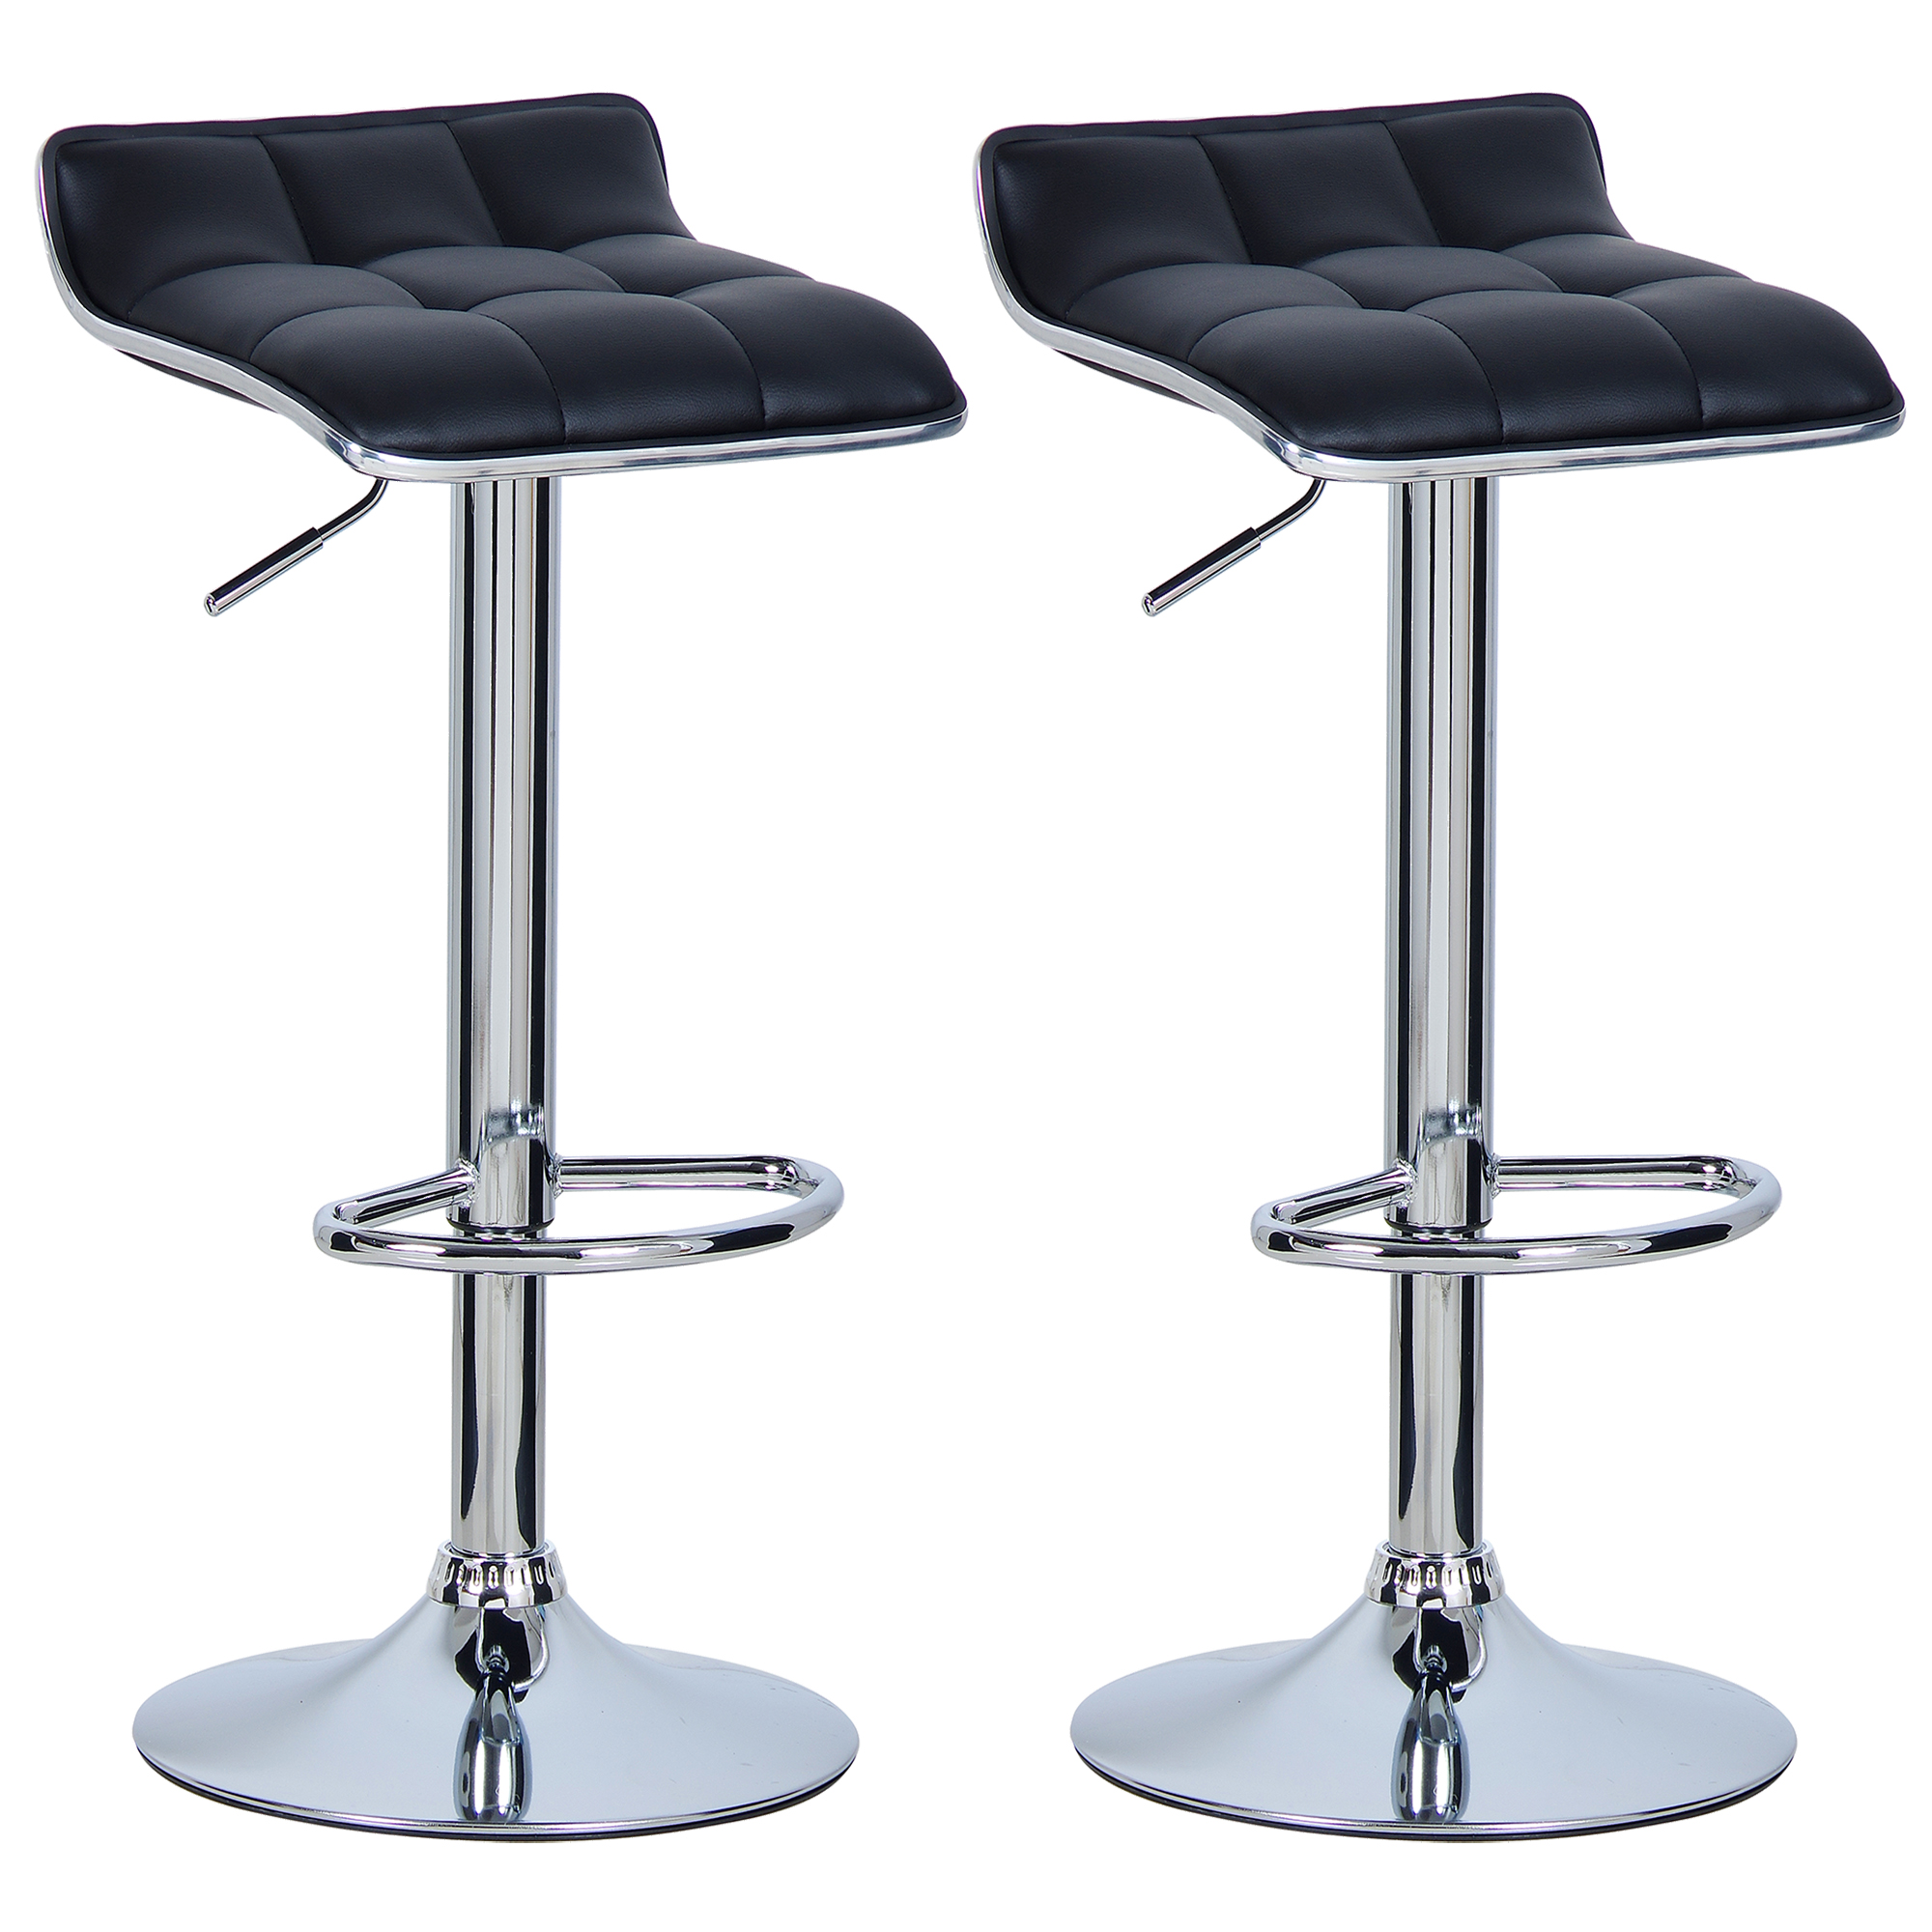 Set Of 2 Bar Stools Barstool Breakfast Kitchen Stool Chair